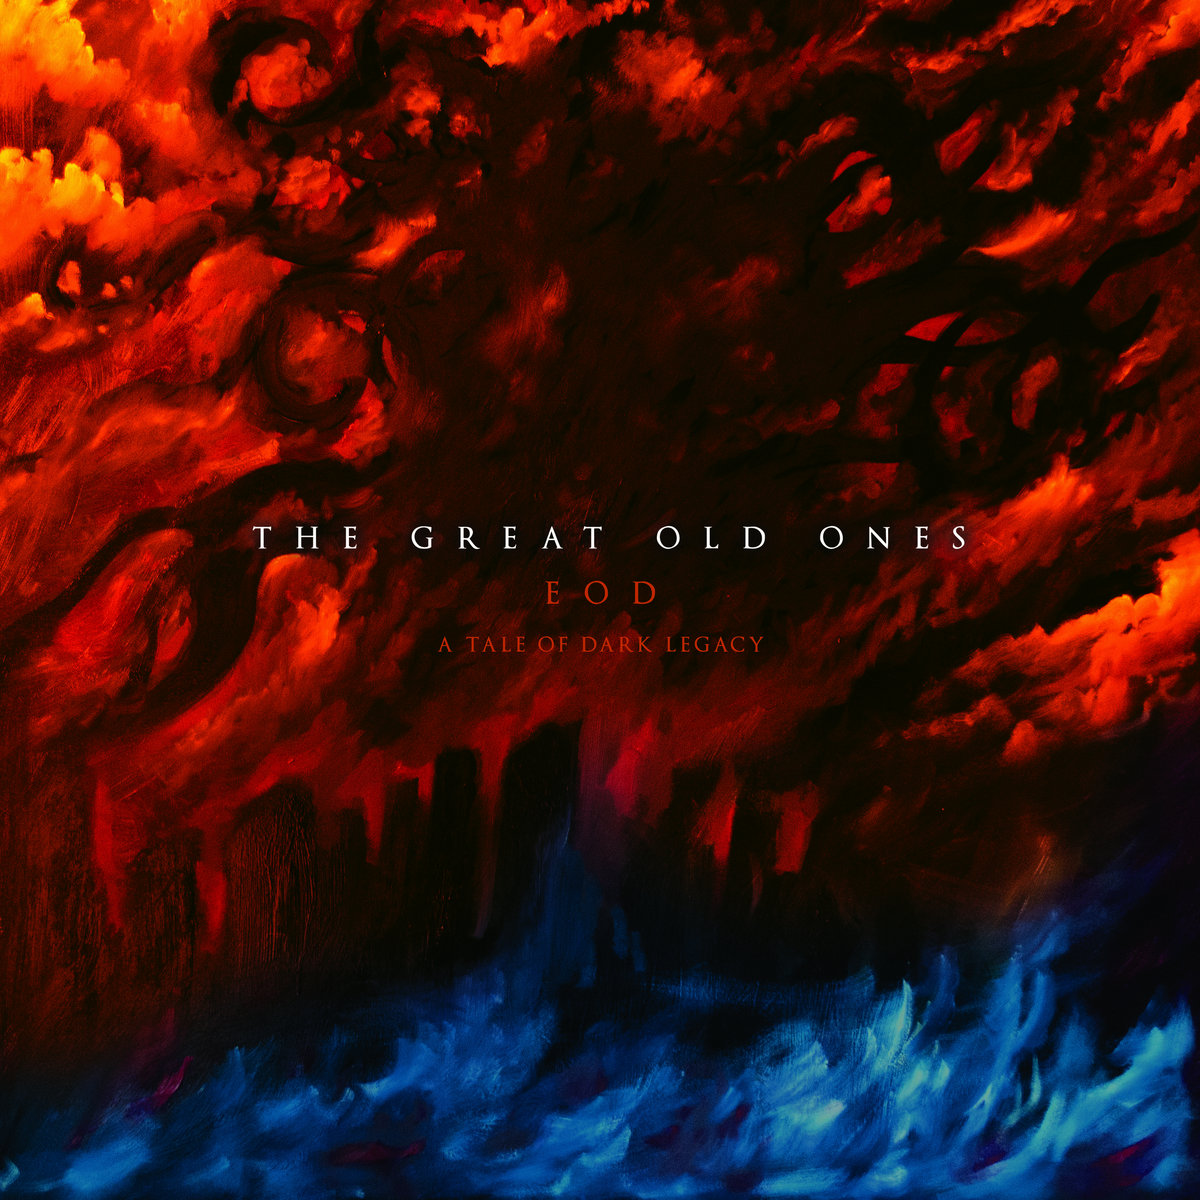 Review : The Great Old Ones - EOD : A Tale of Dark Legacy(2017)